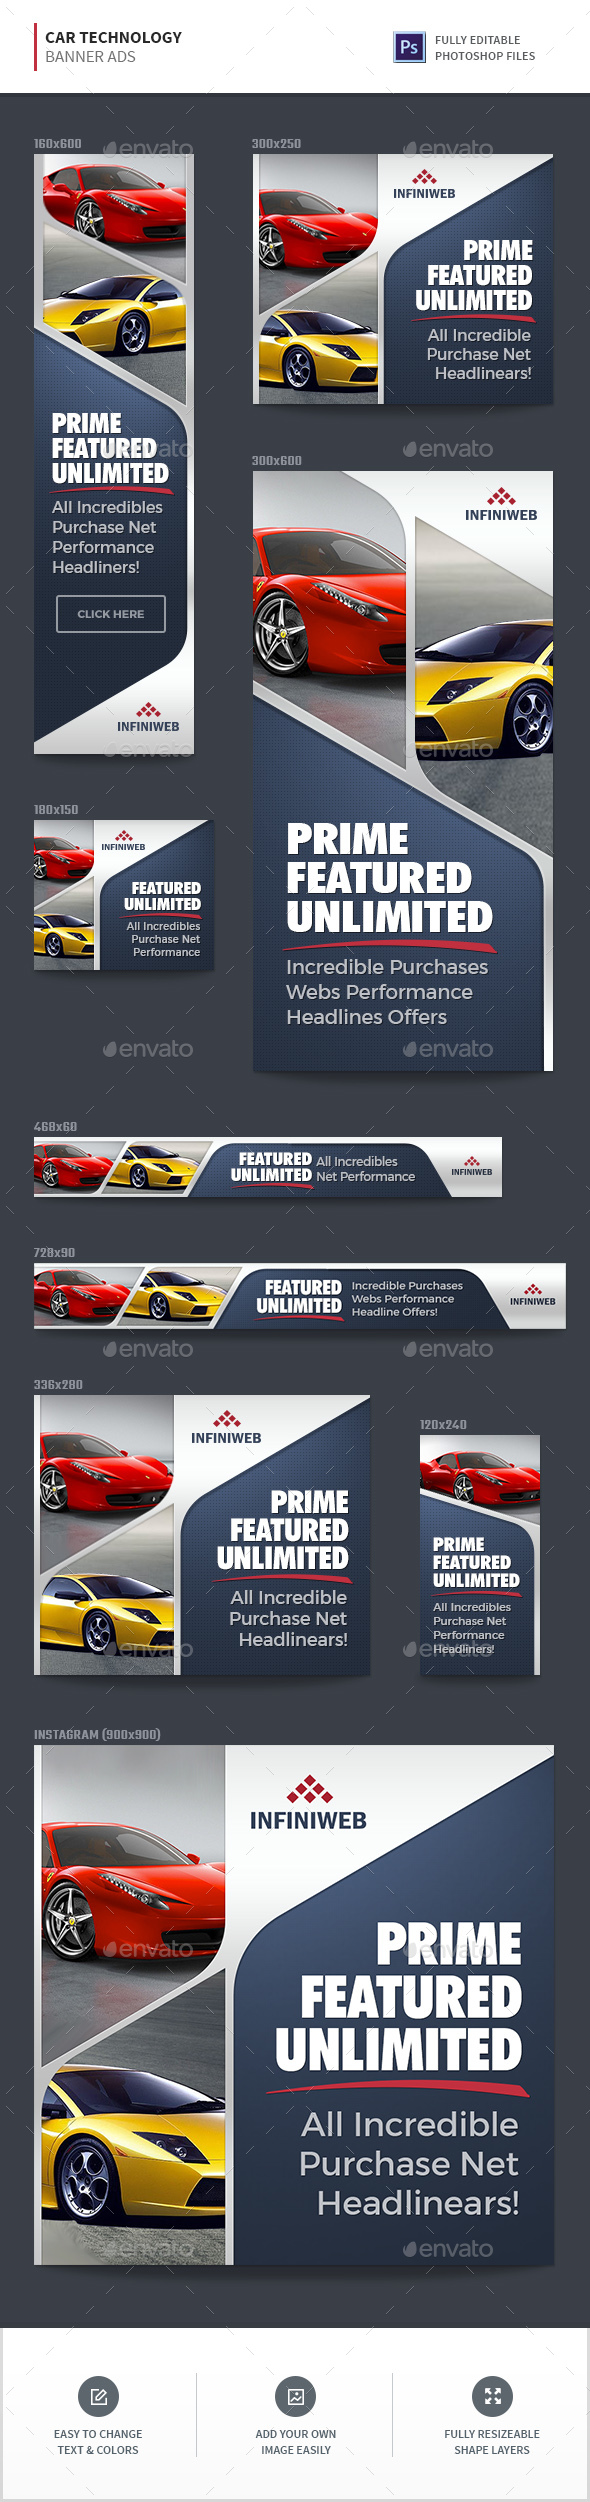 Car Technology Banner Ads - Banners & Ads Web Elements